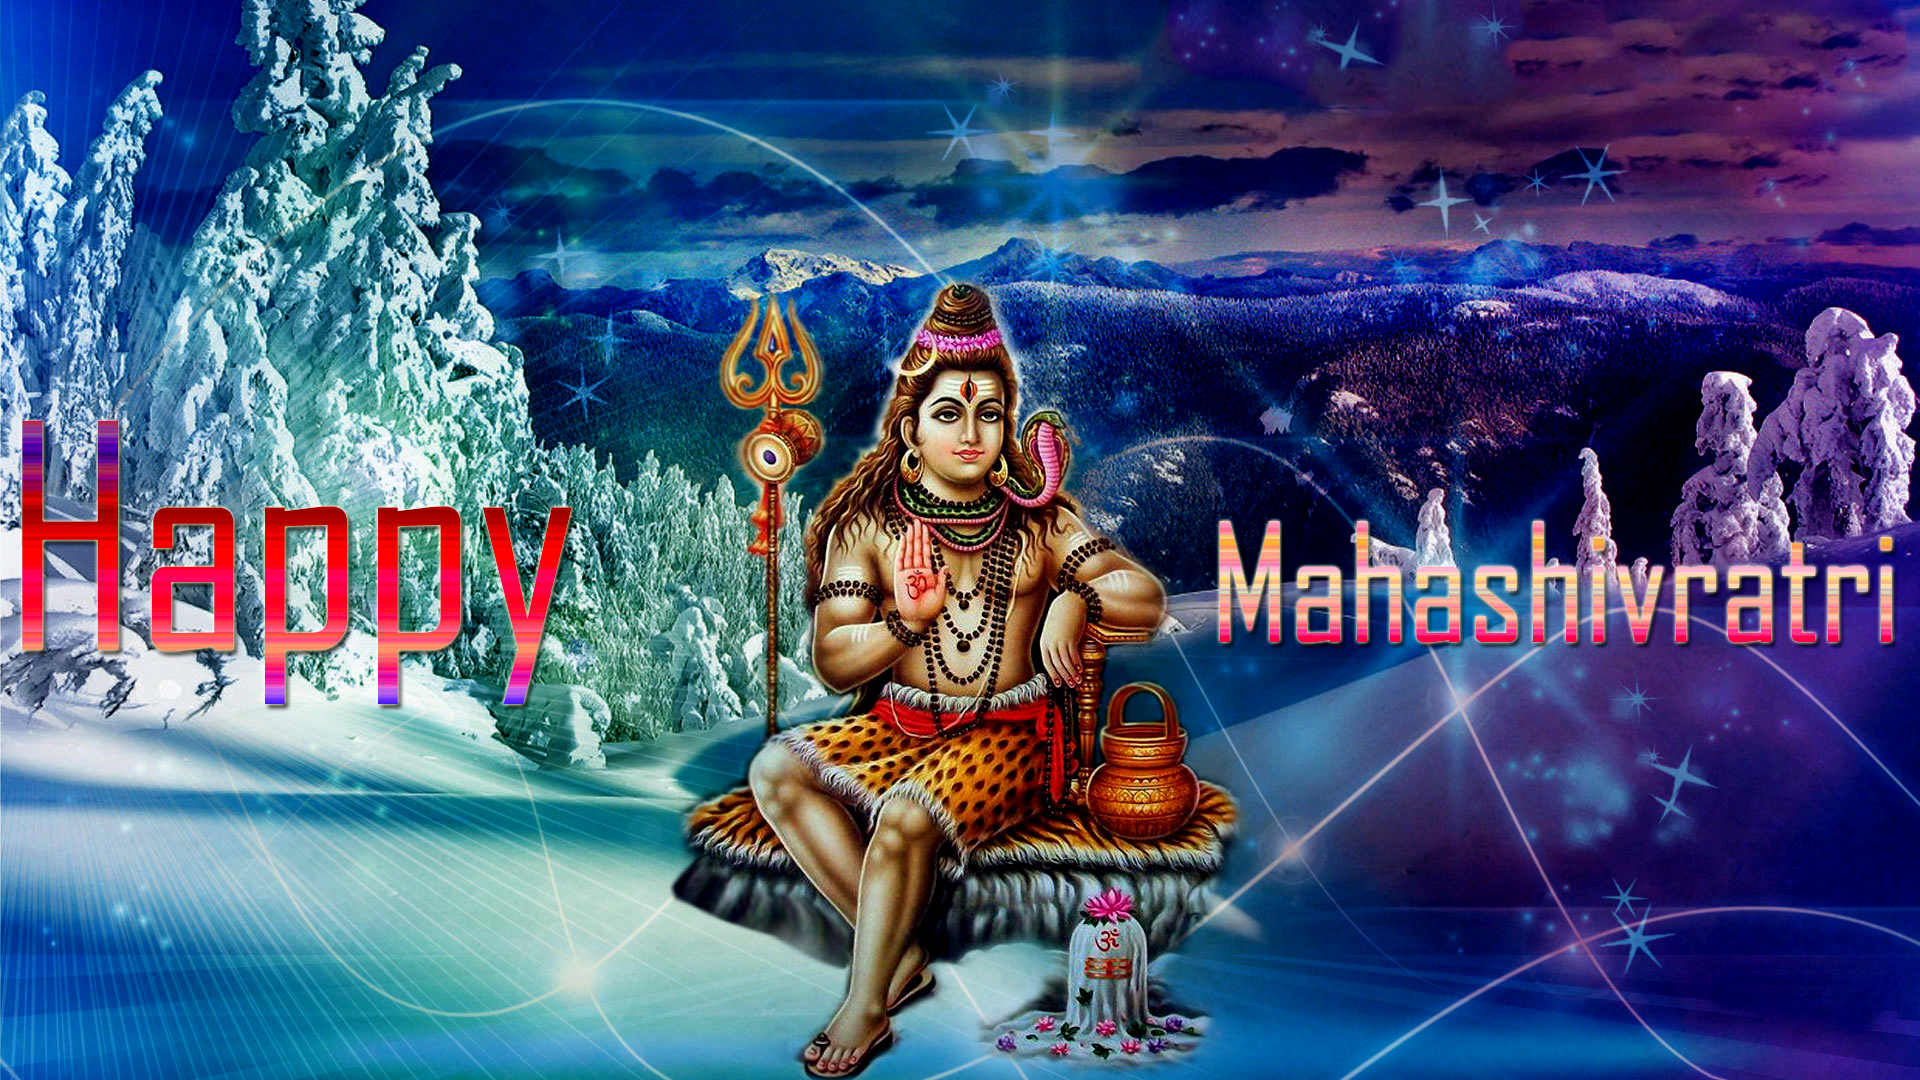 Shiva Maha Shivaratri Hd Wallpapers